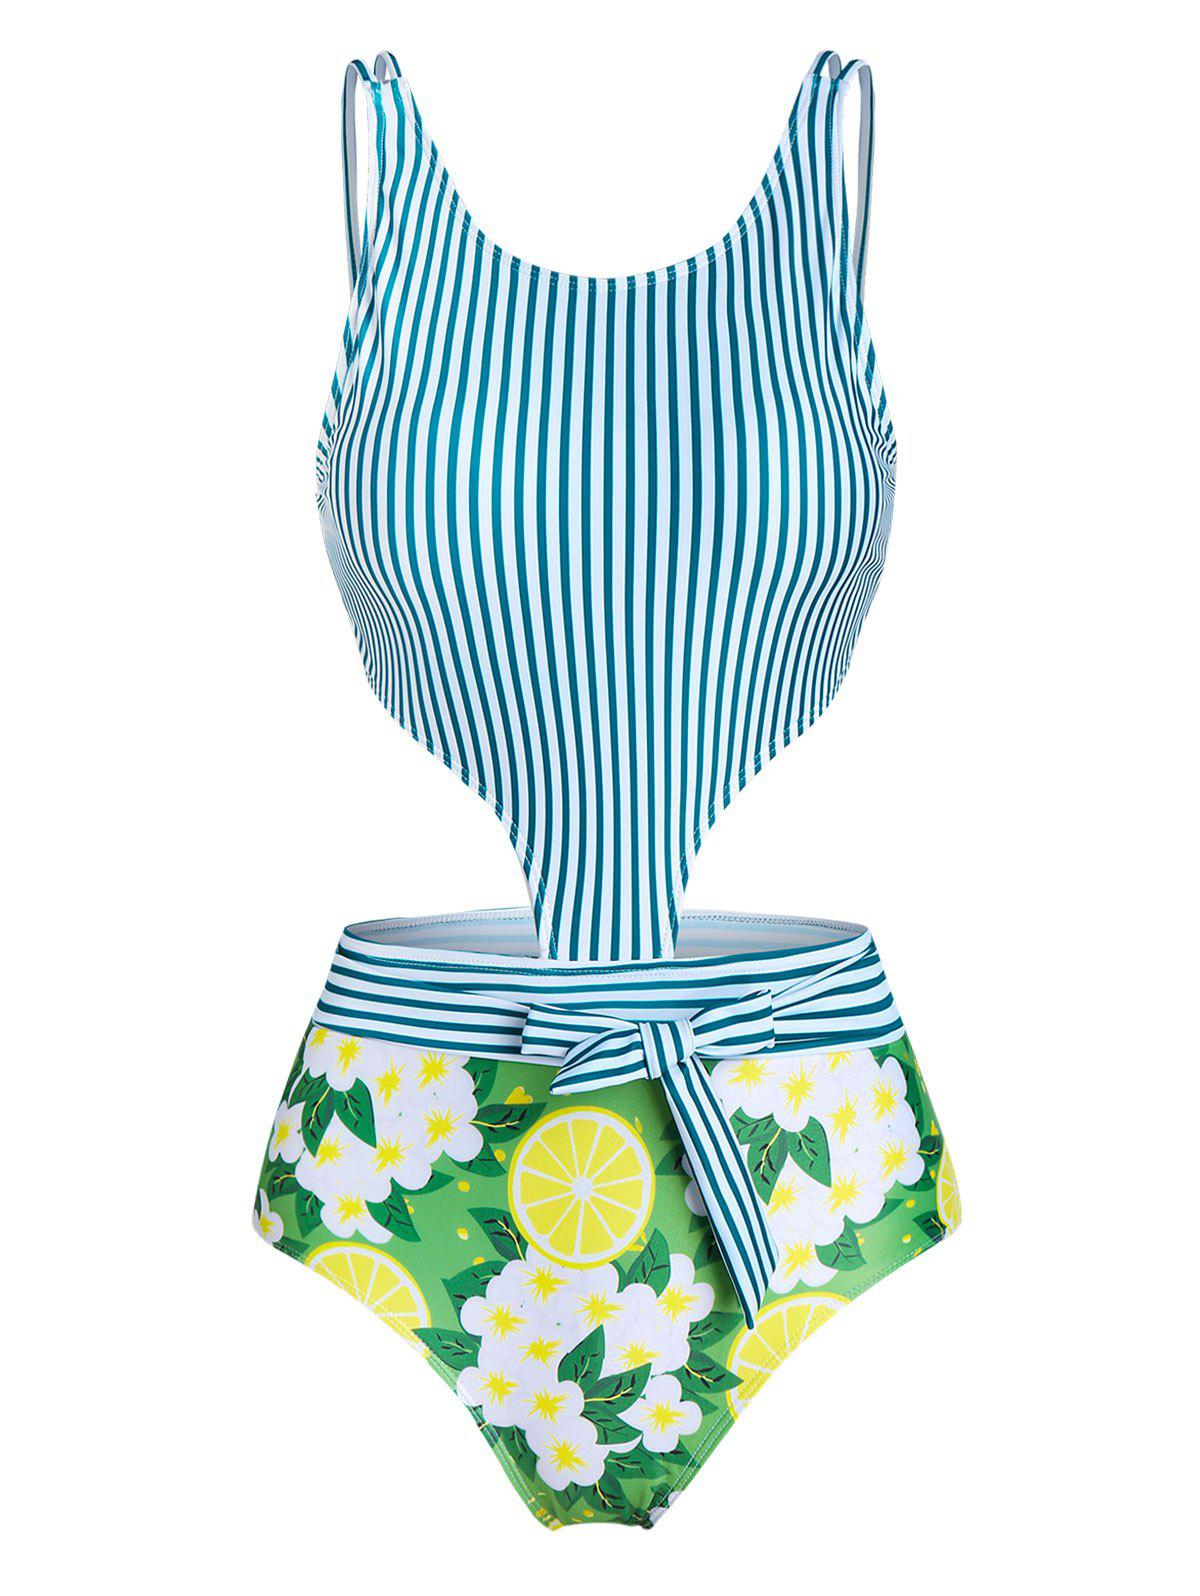 Fashion Vertical Striped Bowknot Cut Out One-piece Swimsuit